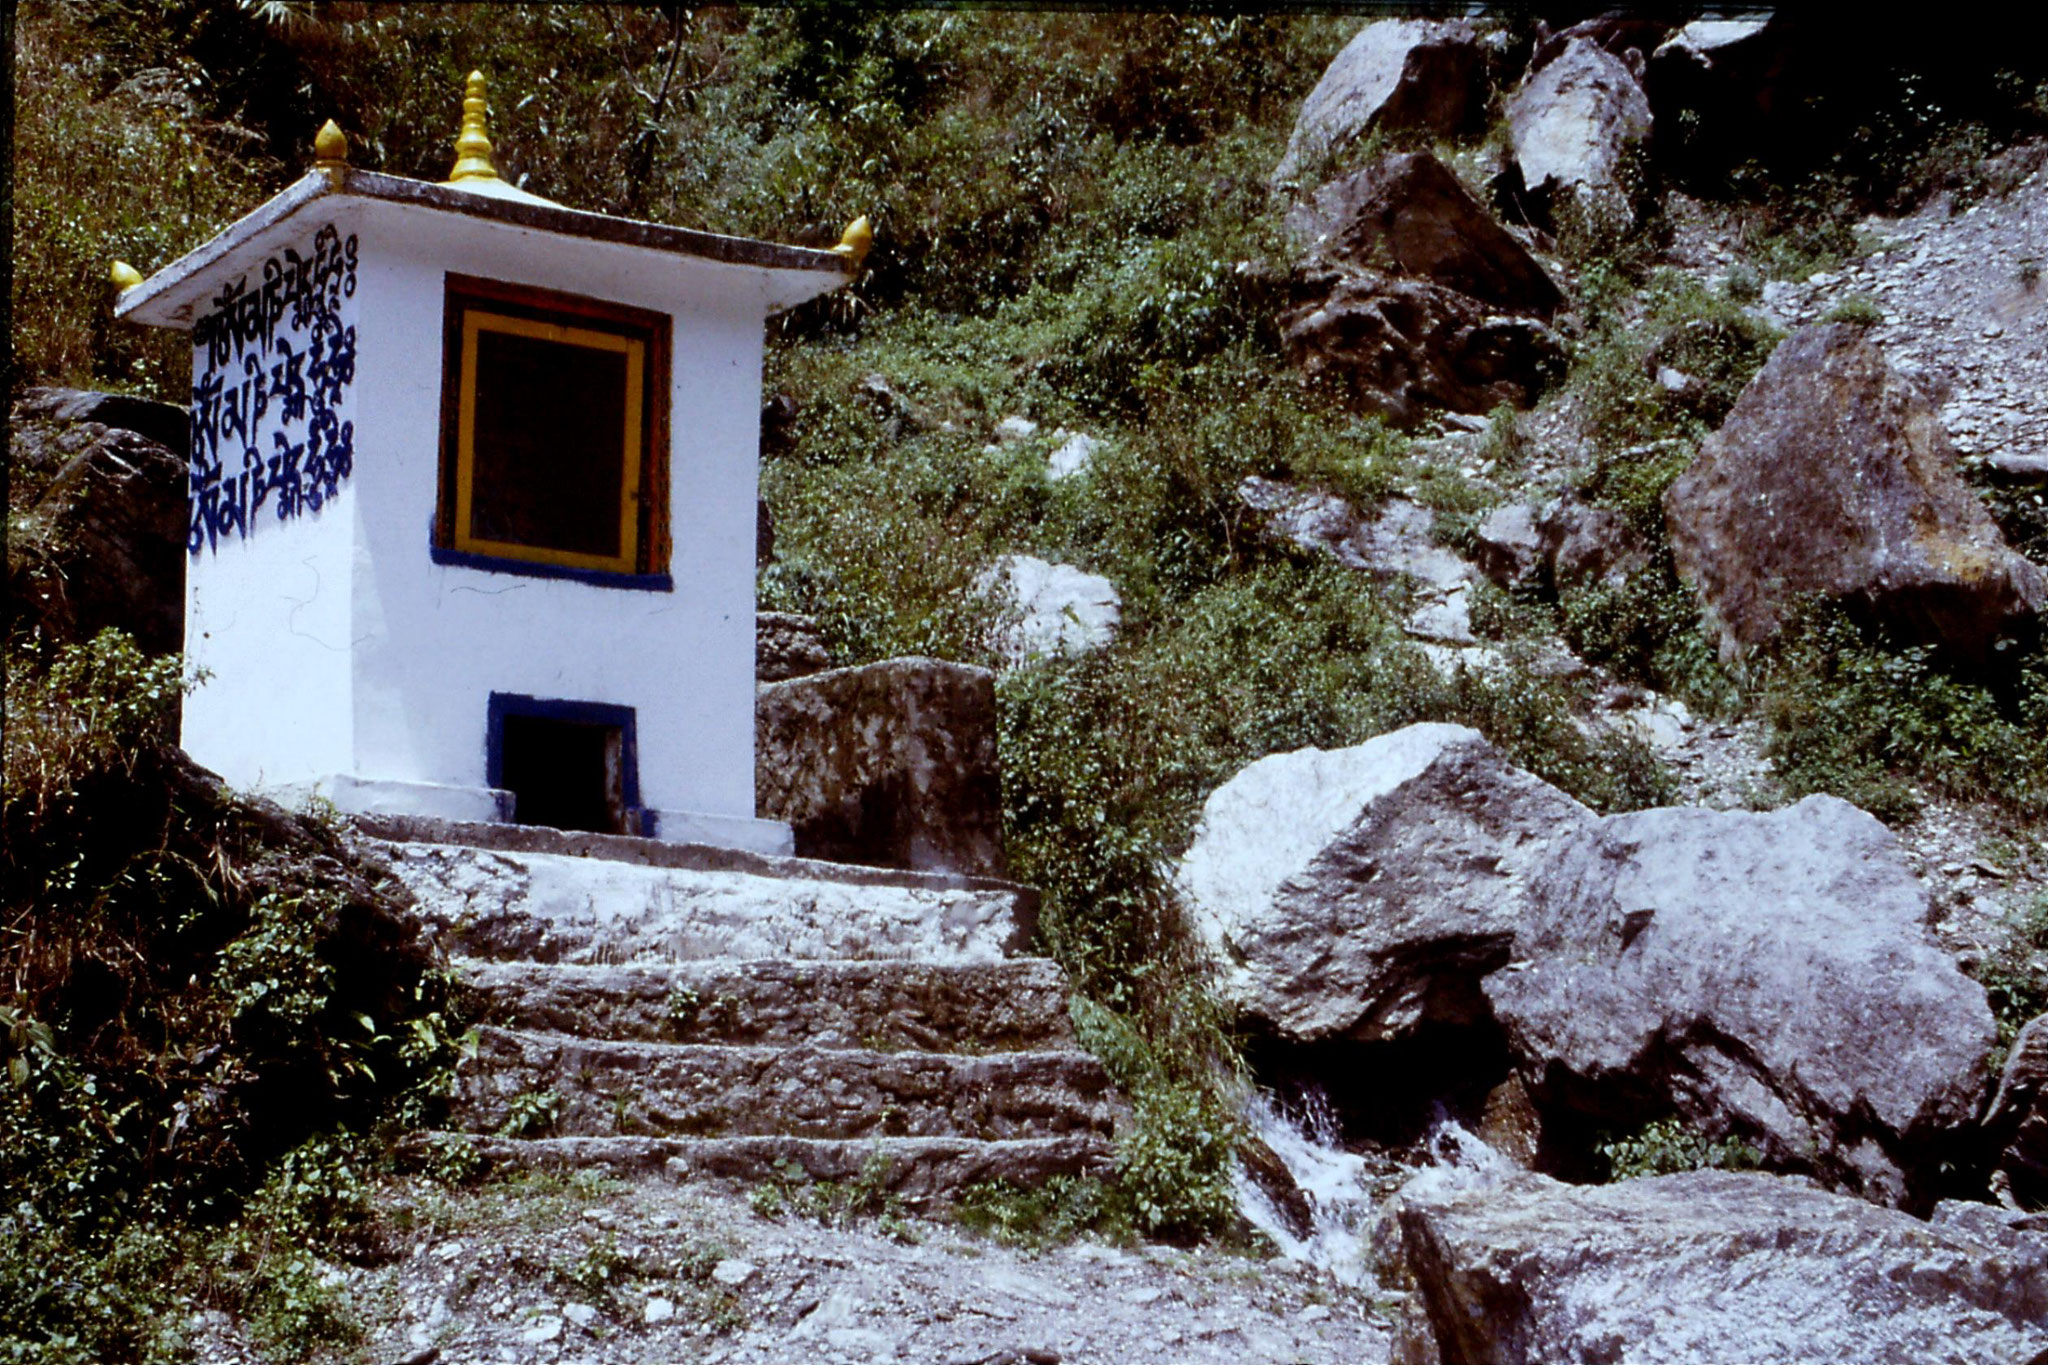 115/20: 25/4/1990 On the road to Phodang - water driven prayer wheel